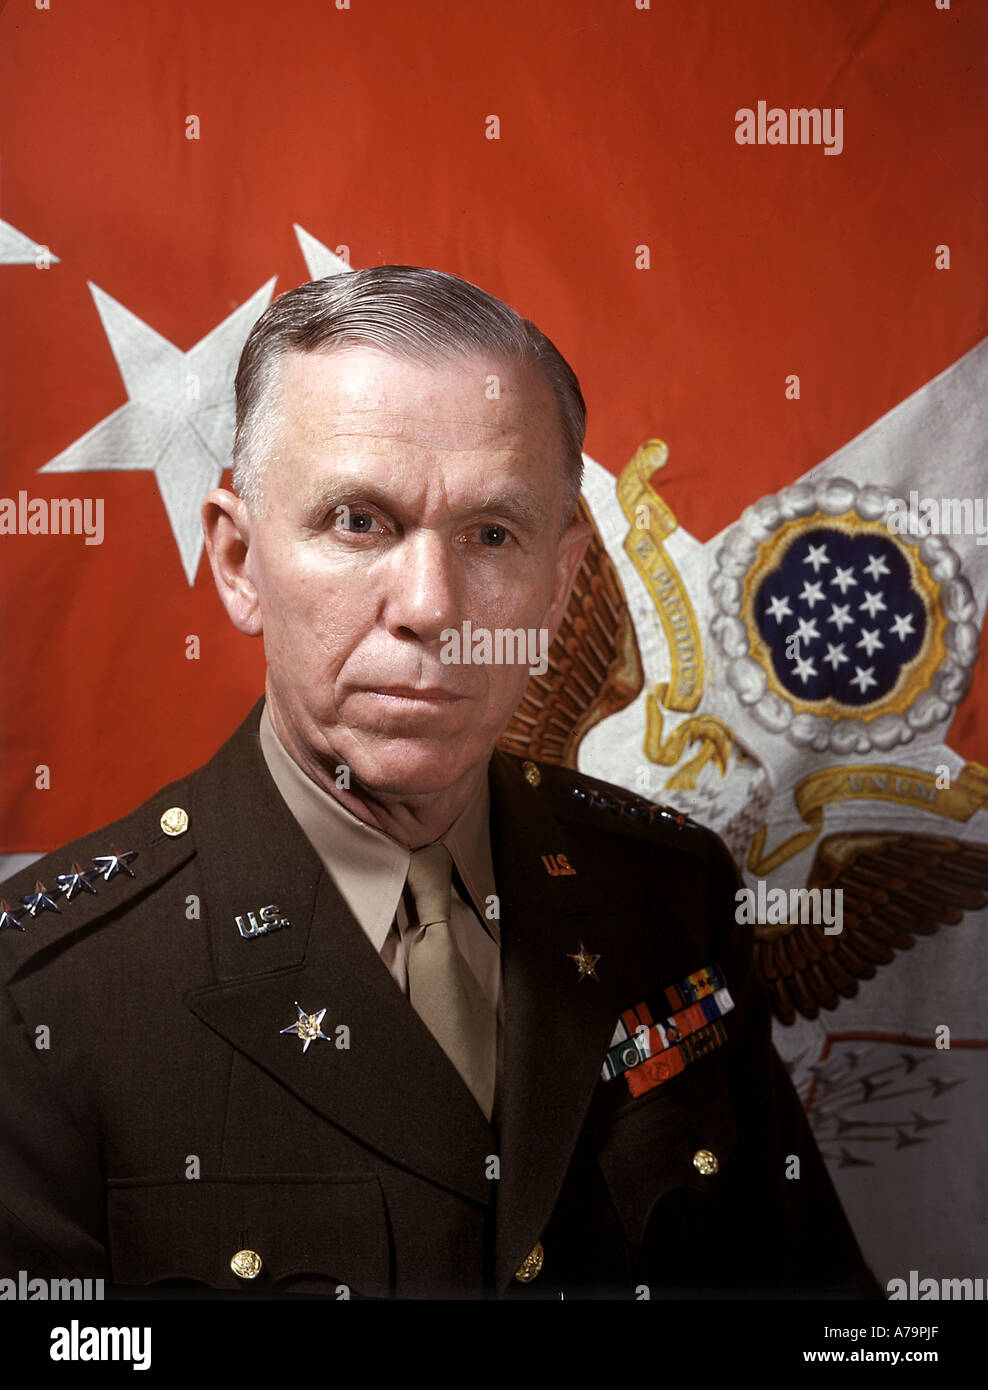 GEORGE MARSHALL  US soldier and politician 1880 to 1959 here as Chief of Staff during WW2 - Stock Image